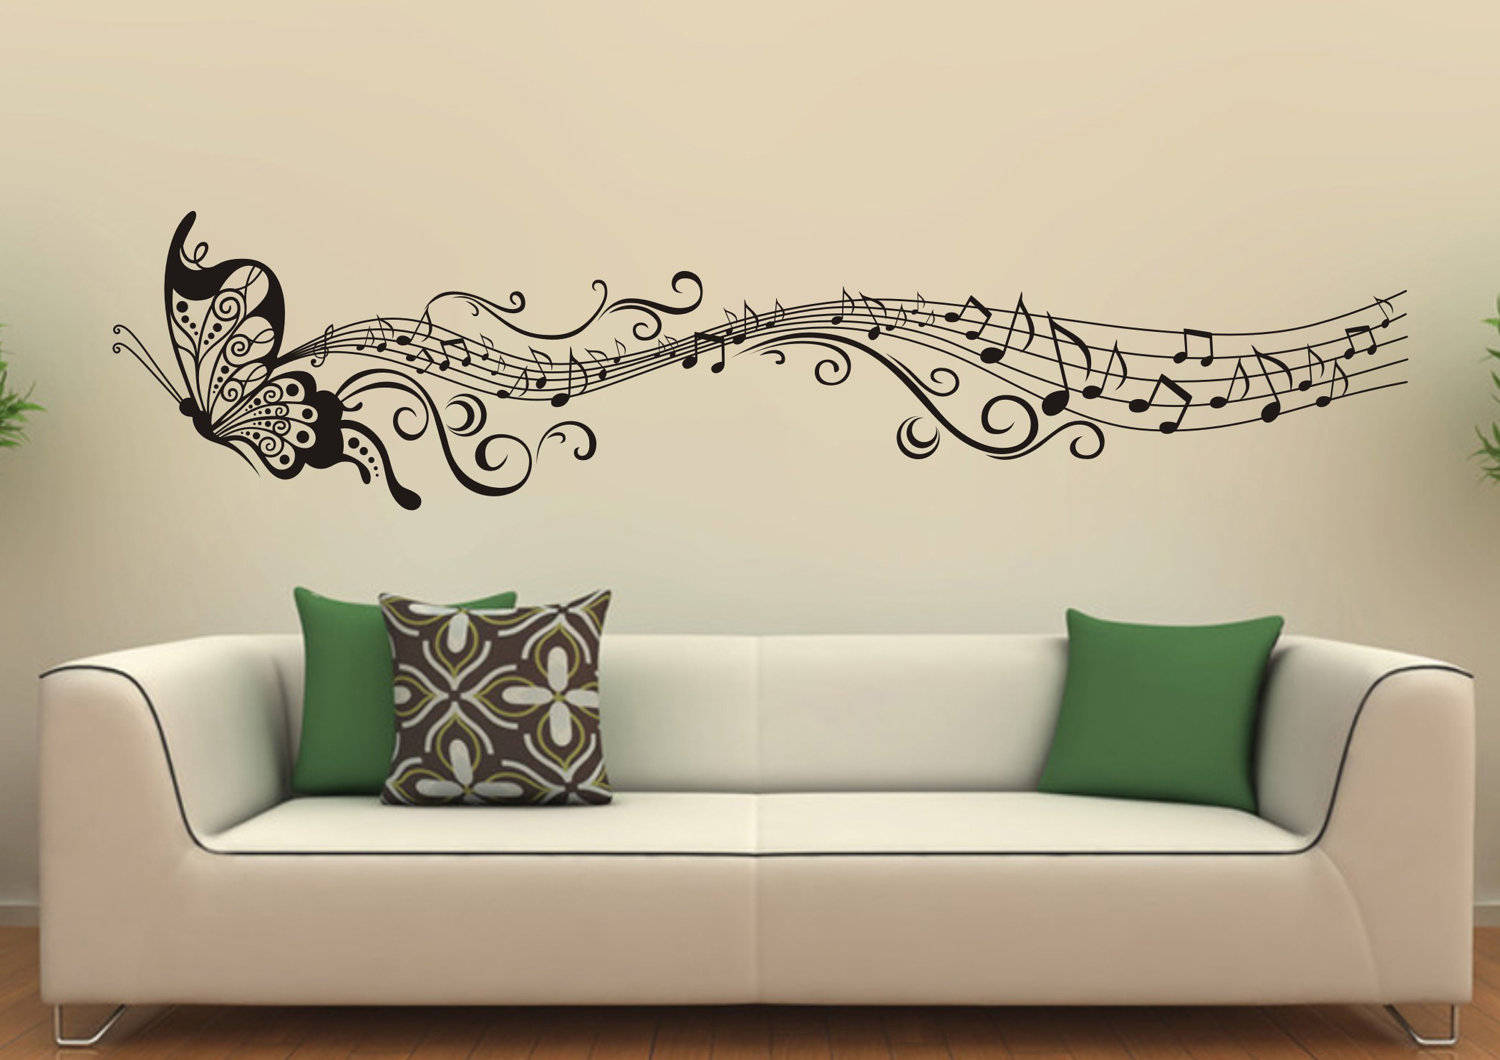 dazzling-decorations-easy-wall-art-ideas-for-decoration-inspirations-wall-decorations